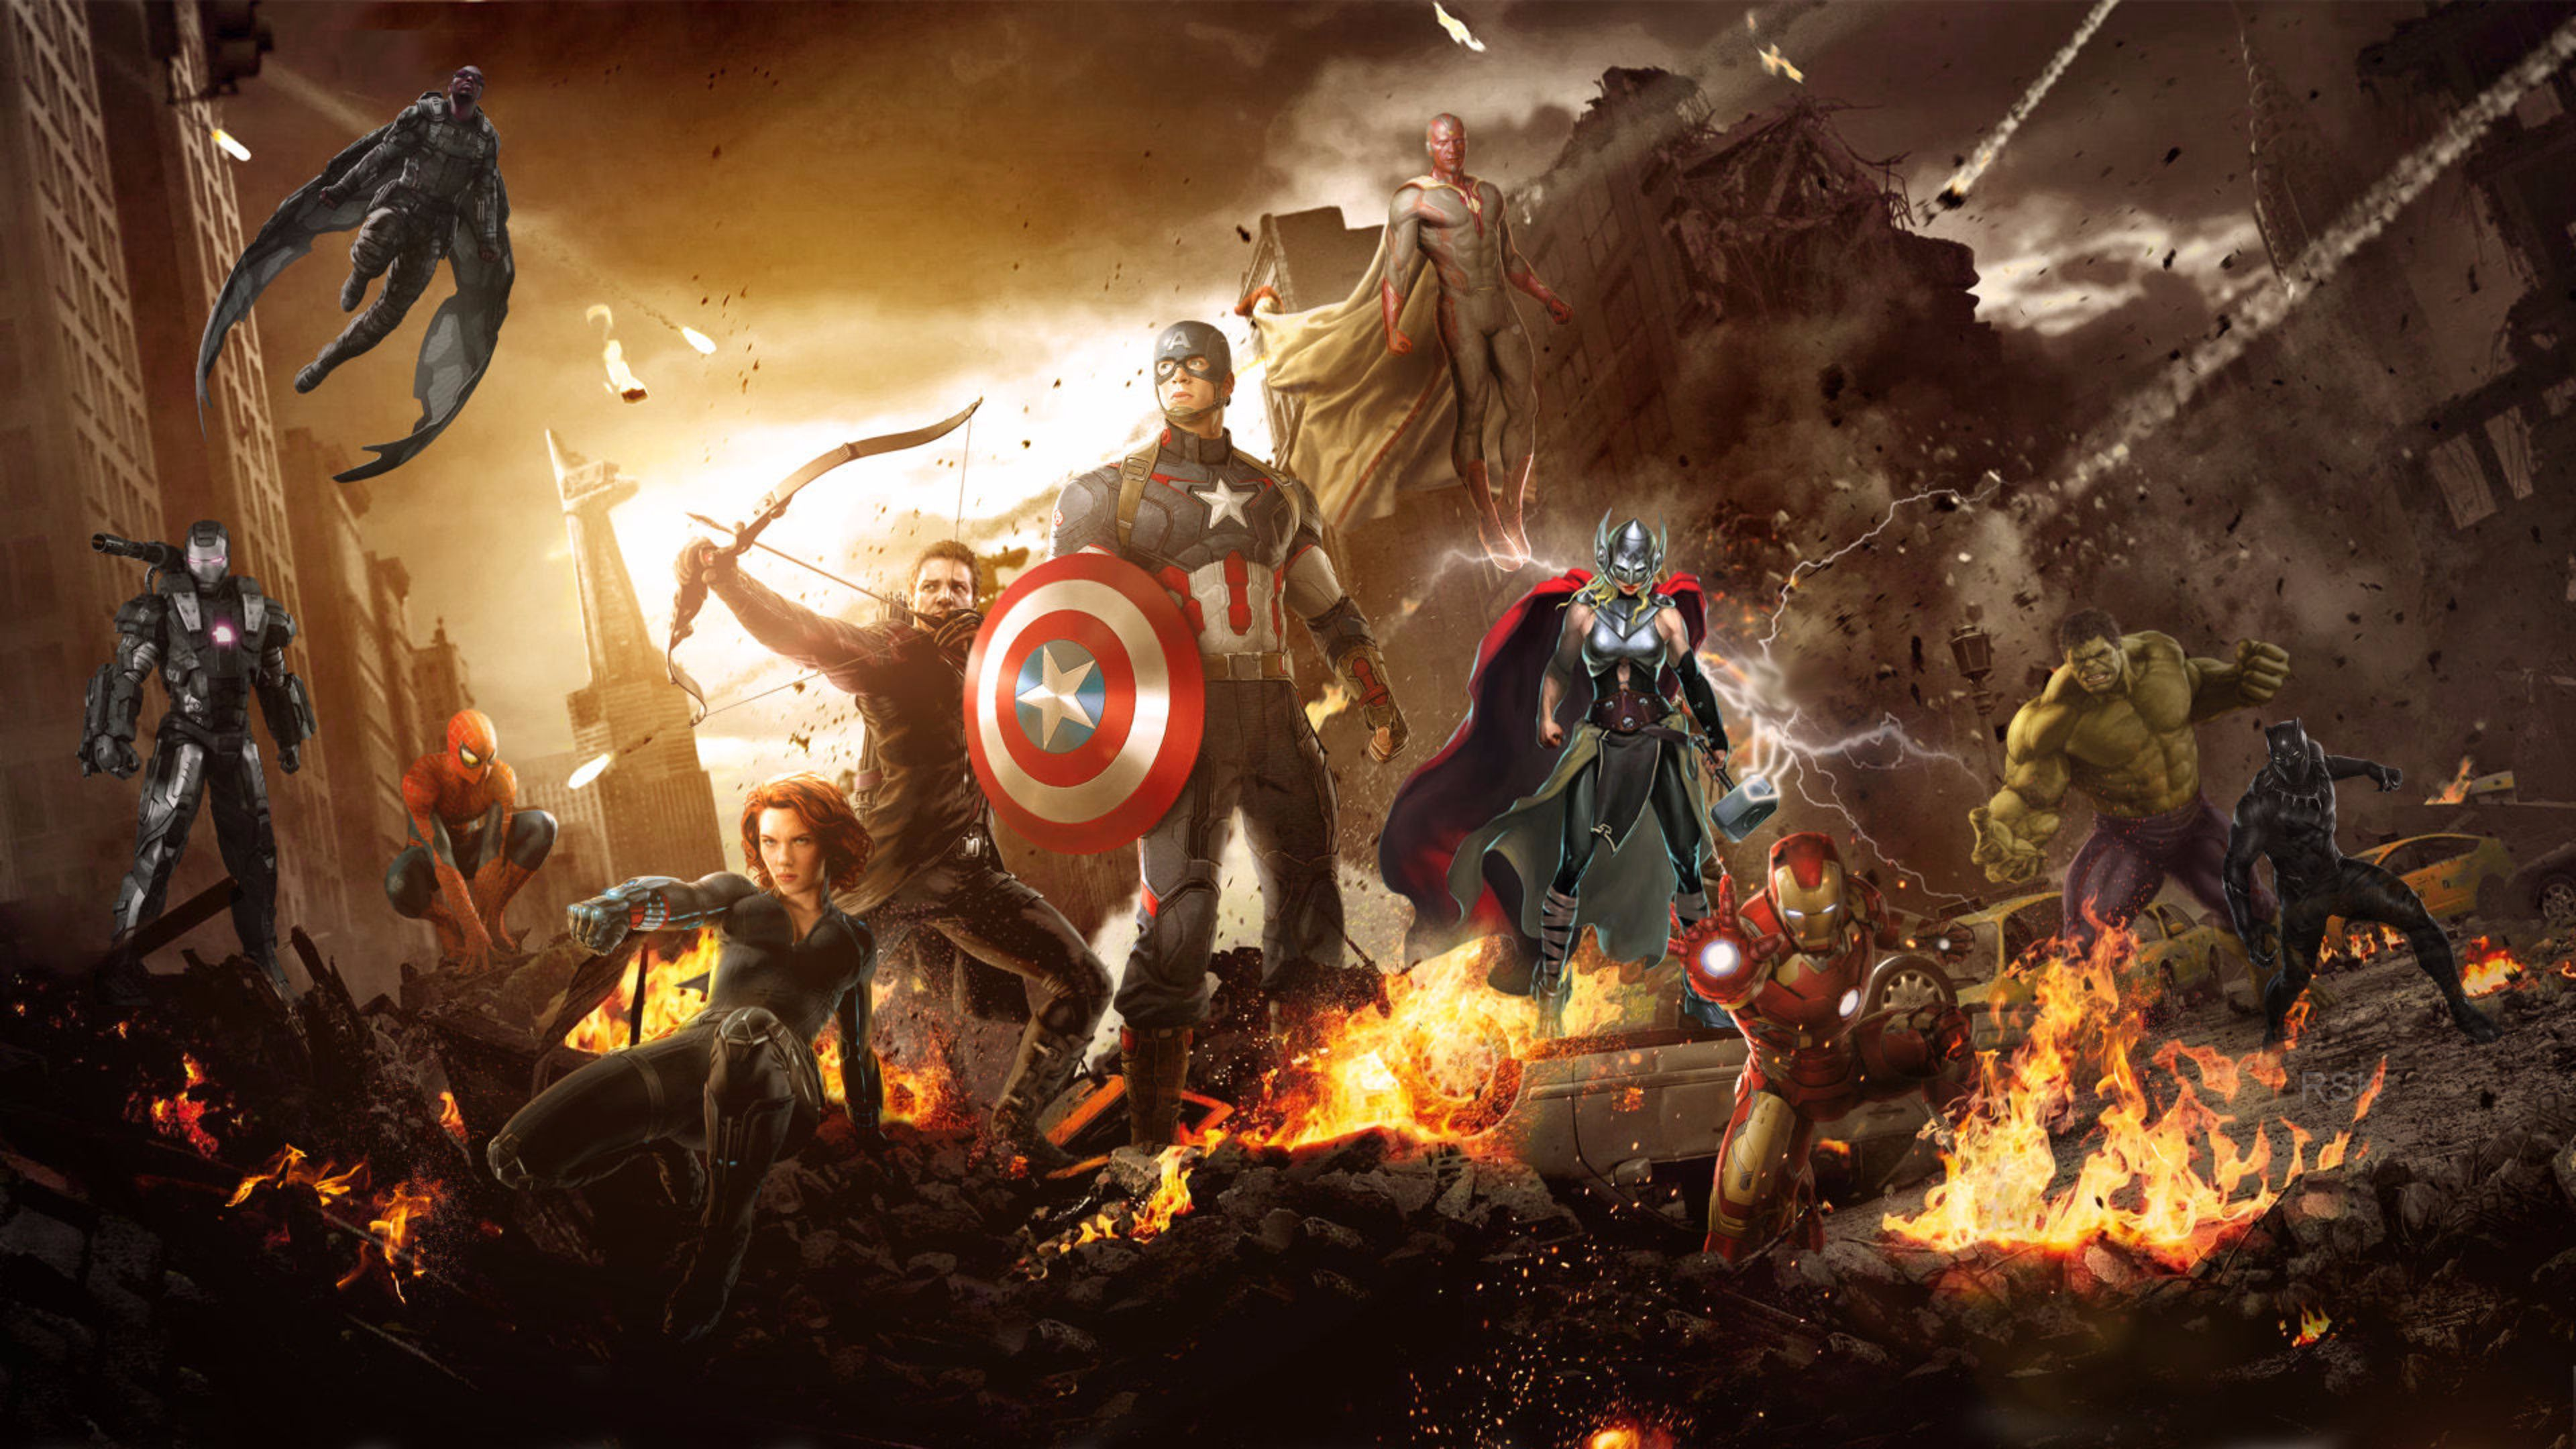 Awesome background pictures wallpapersafari - 4k Captain America Wallpaper Wallpapersafari